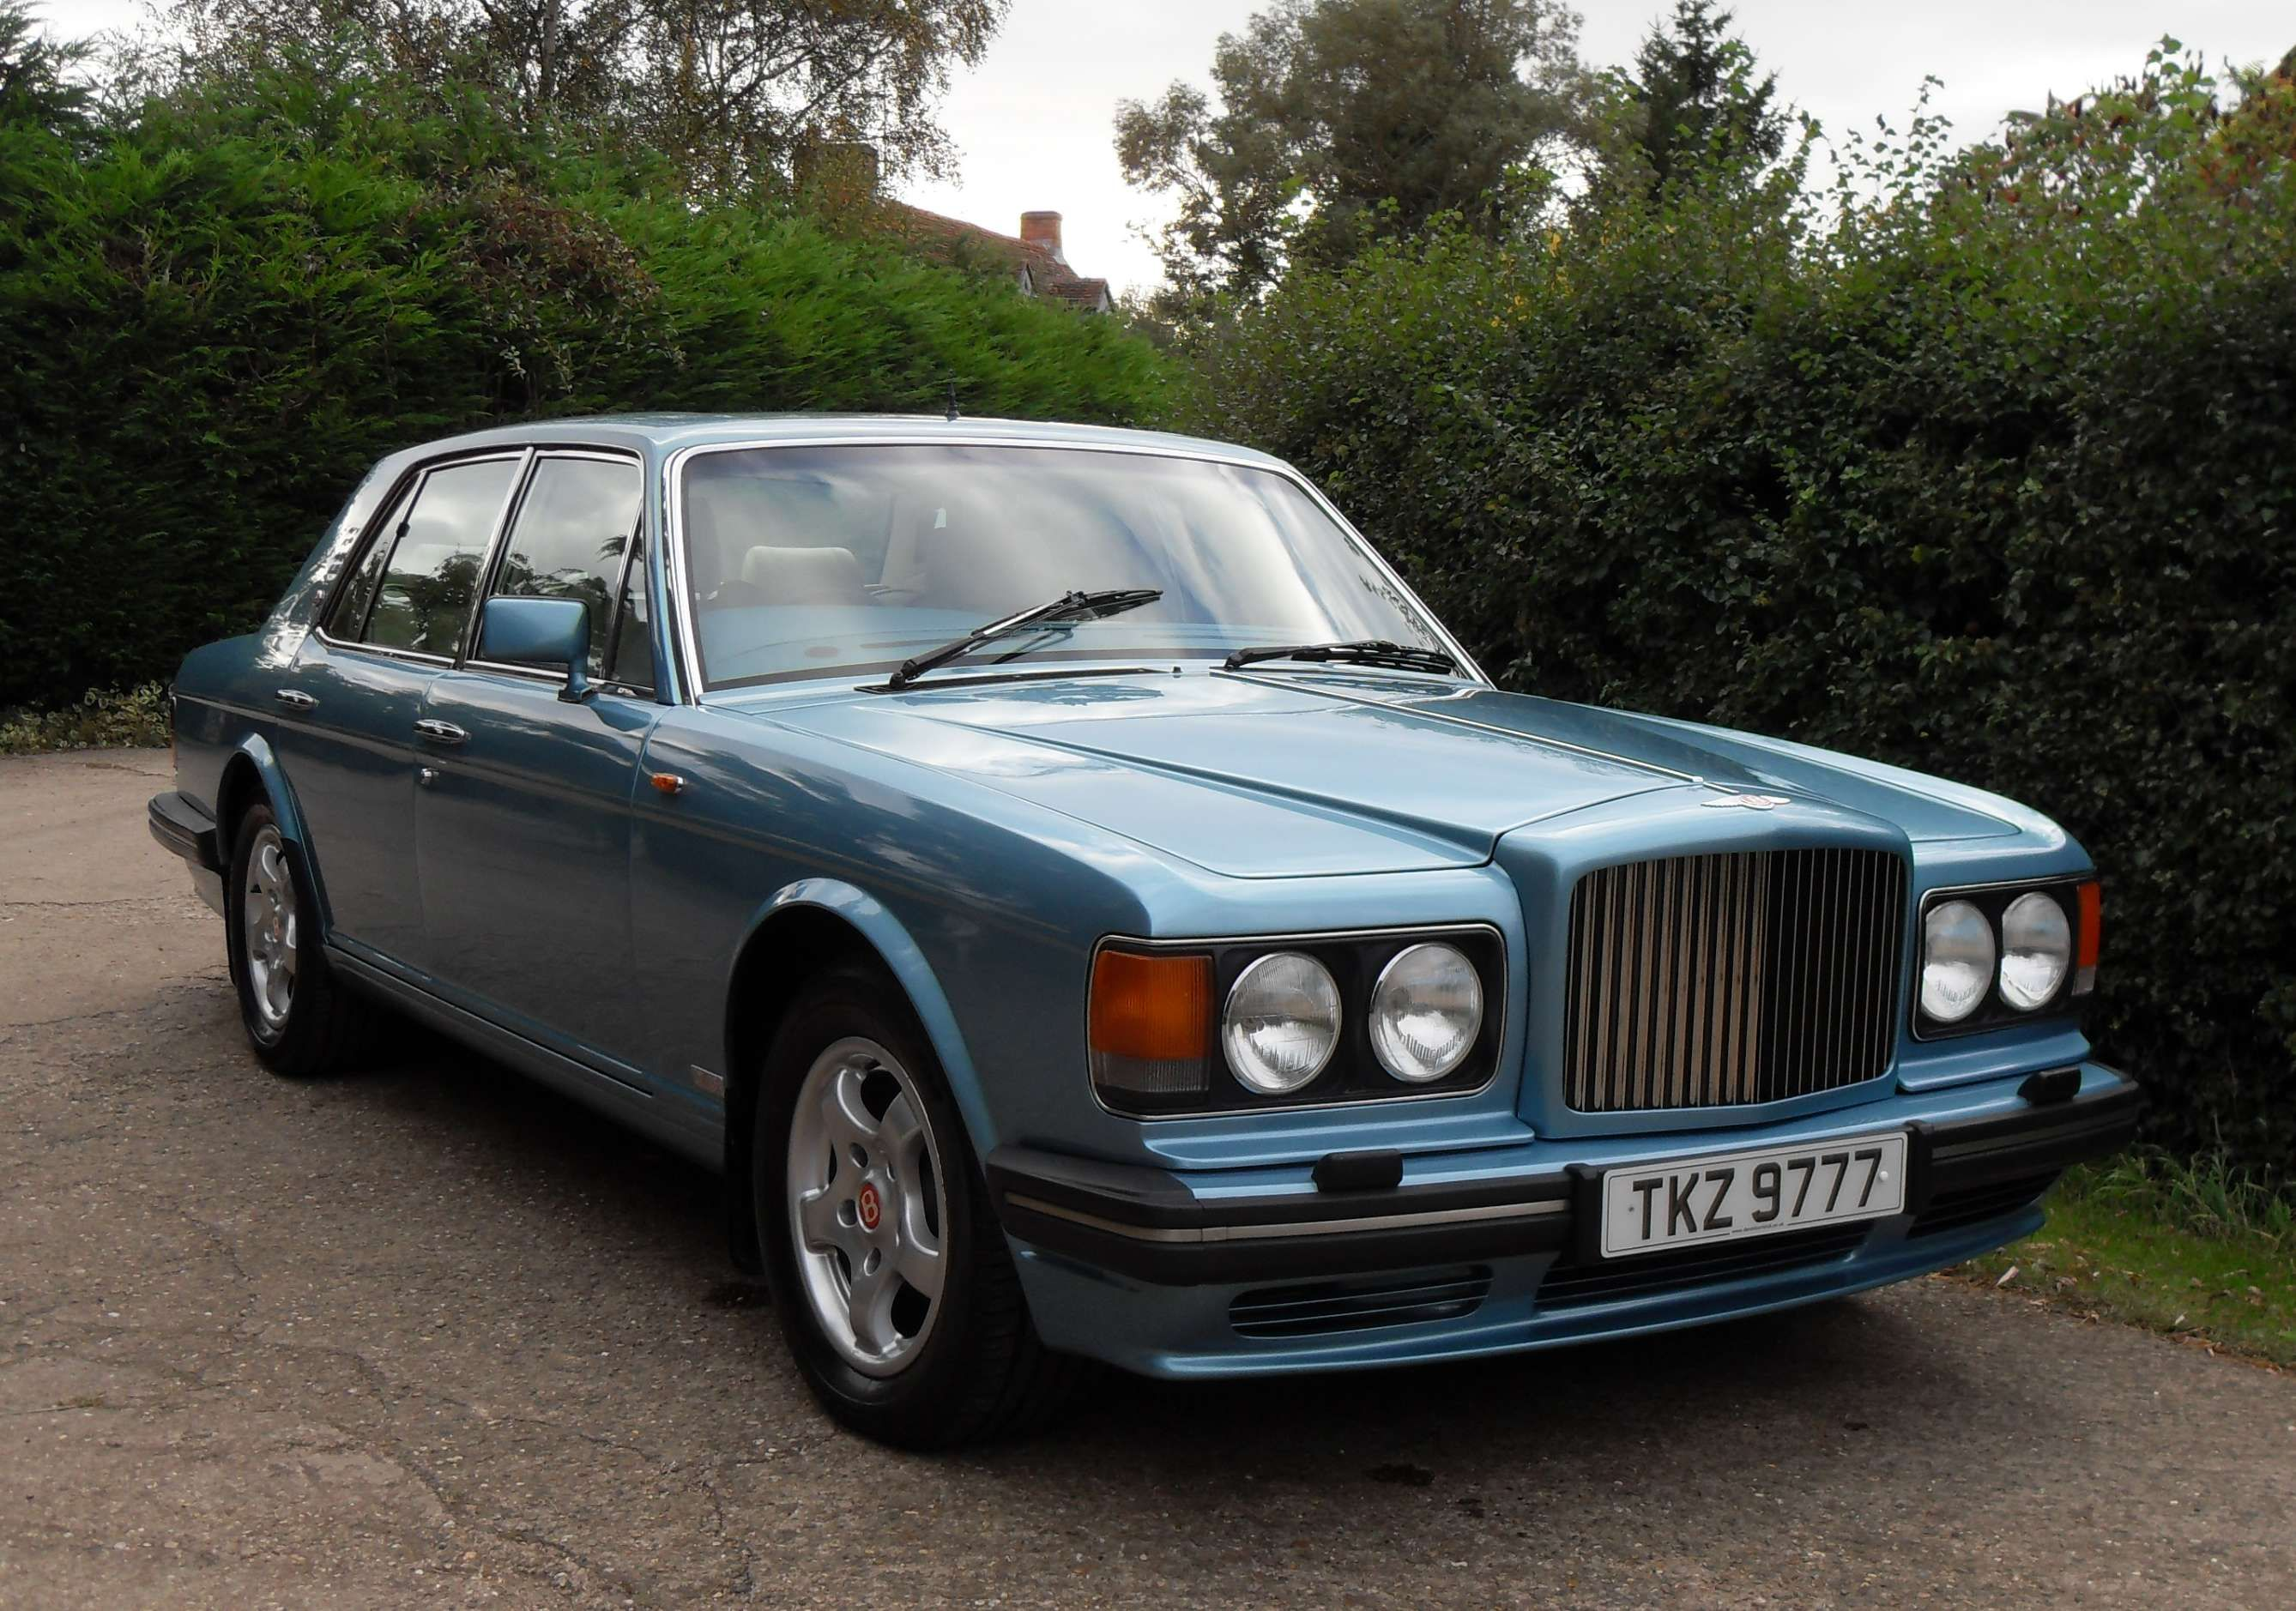 1996 Bentley Turbo r  pictures information and specs  Auto